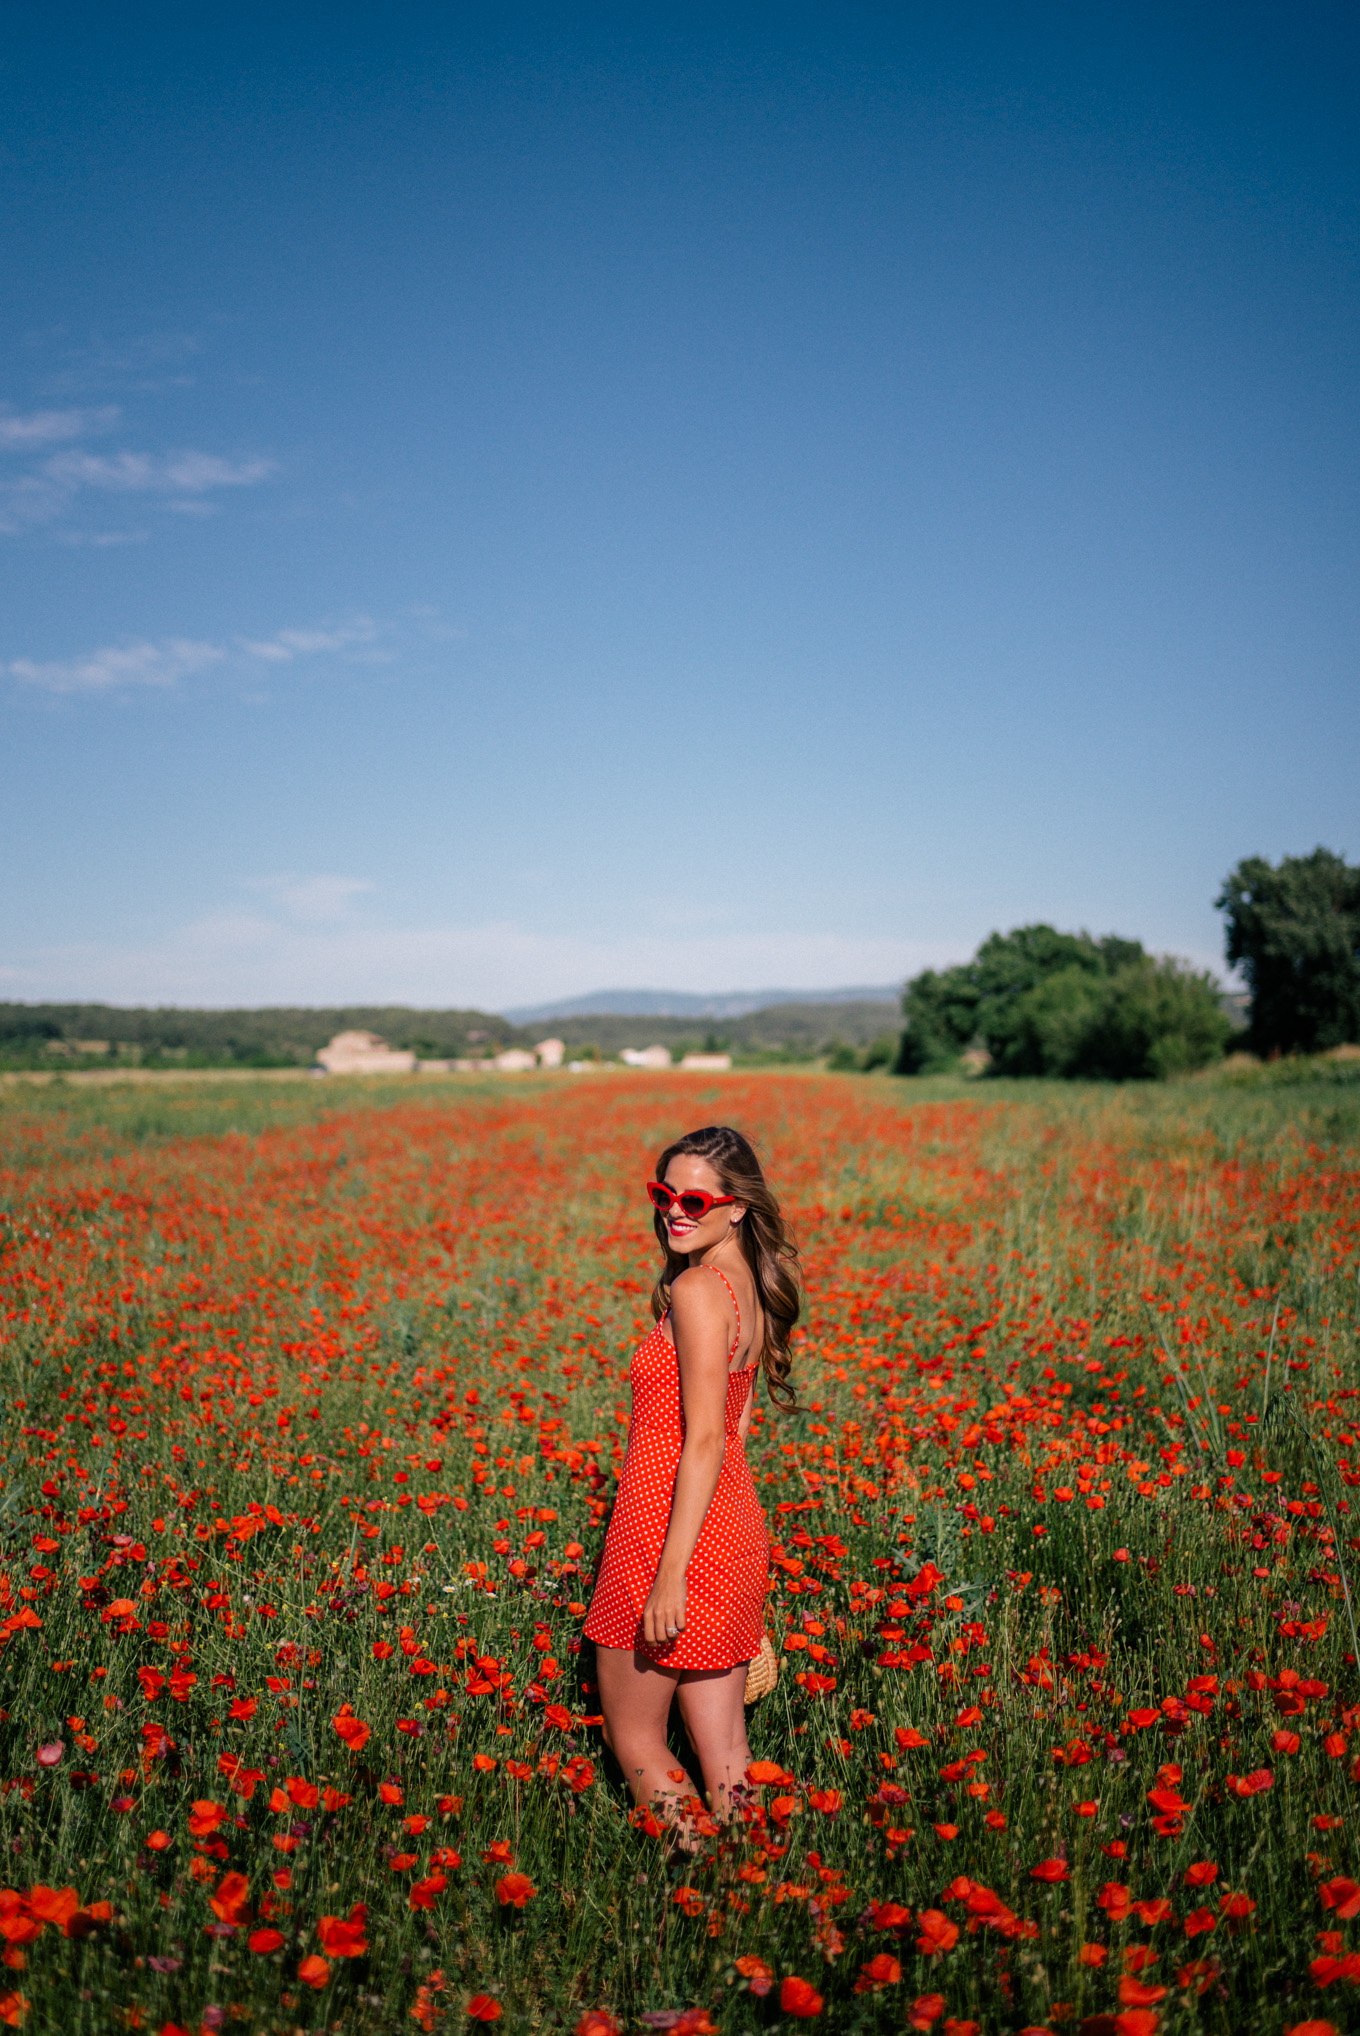 gmg-red-dress-poppy-fields-france-1001144